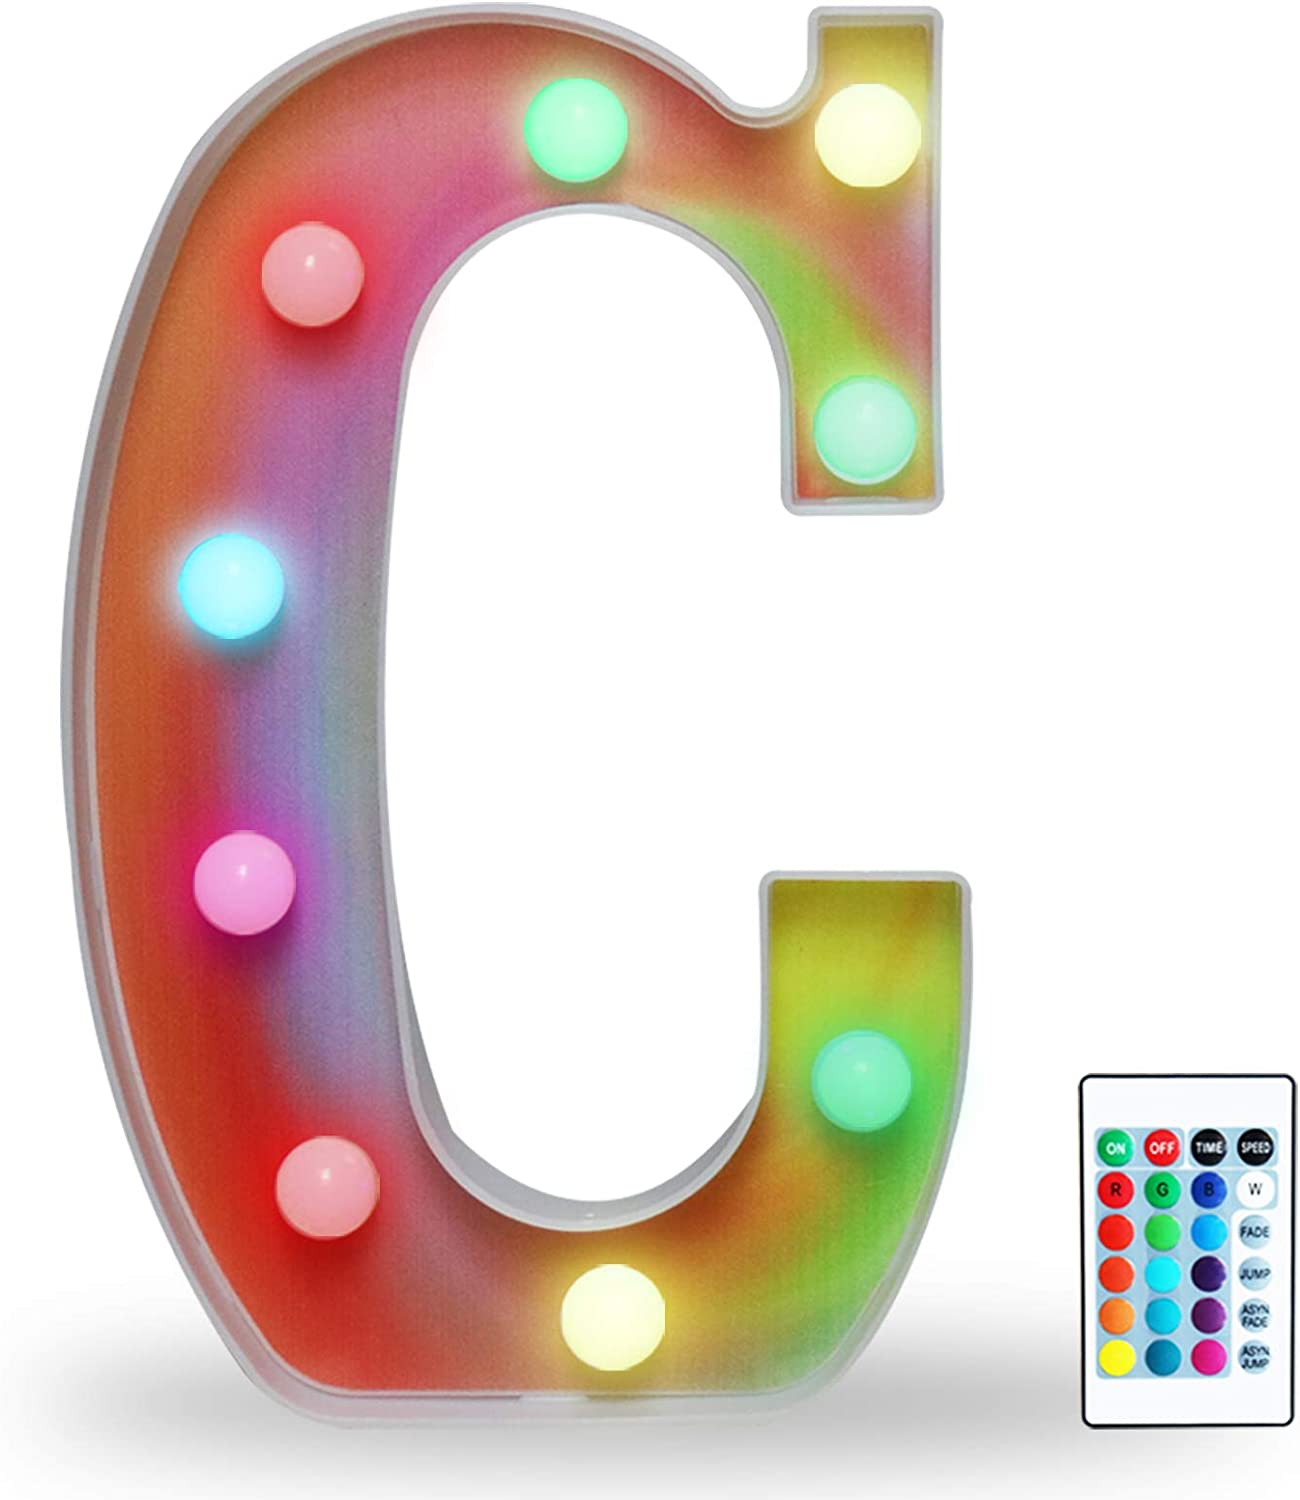 16 Color Changing Rainbow Marquee Letter with Lights, RGB Letter Lights Signs Remote Control Night Light for Valentin's Day, Birthday Party, Wedding, Christmas Decor- Rainbow Letter C